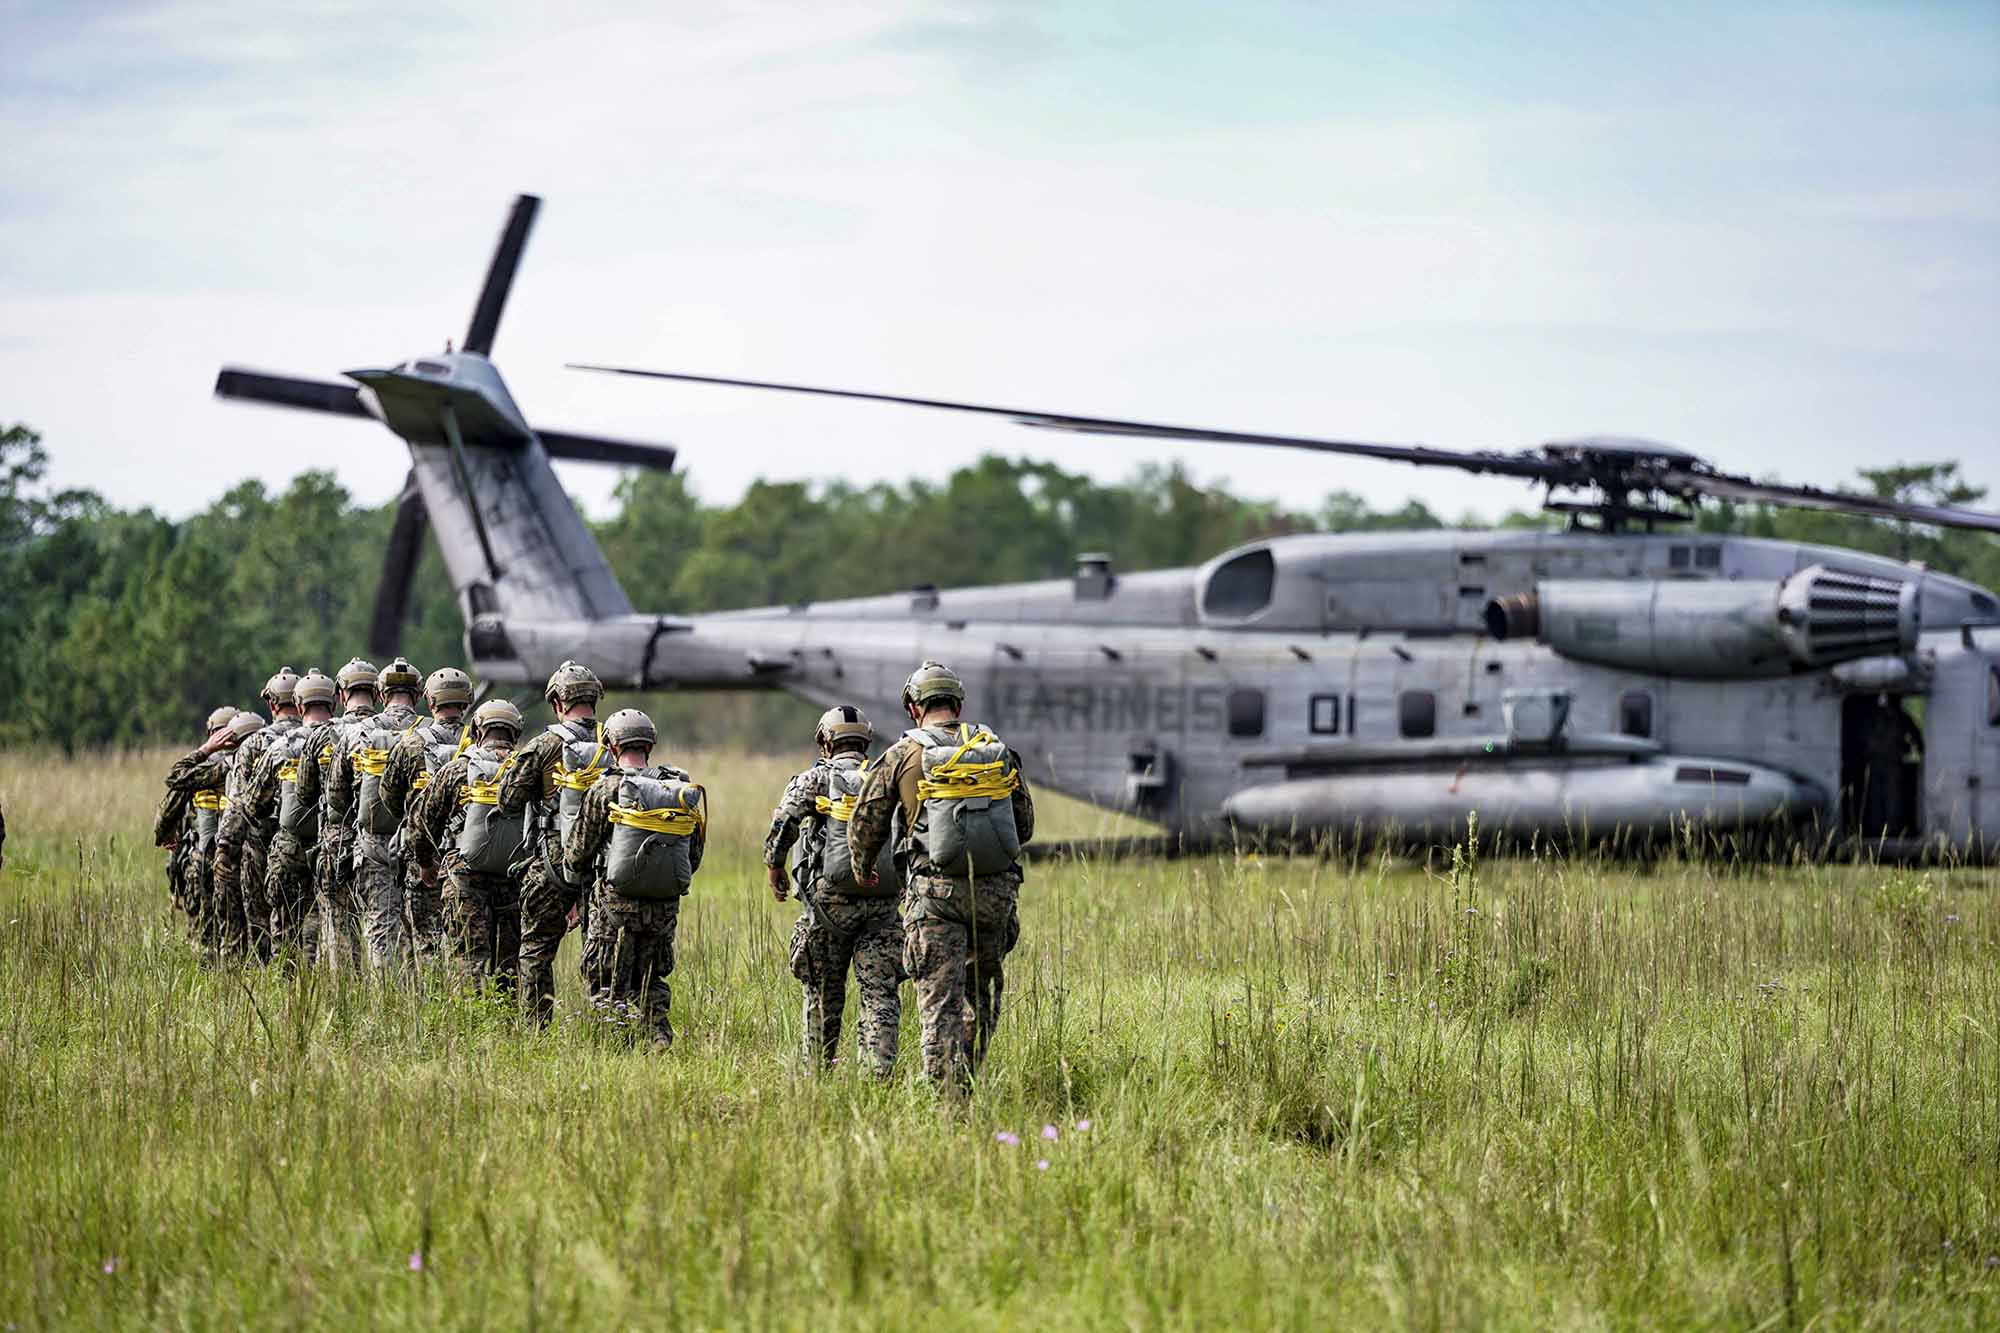 Marines with 3rd Force Reconnaissance Company, 4th Marine Division prepare to static line jump out of a CH-53 Super Stallion during an airborne operations event at Camp Shelby, Miss., Oct. 6, 2020. (Sgt. Conner Downey/Marine Corps)